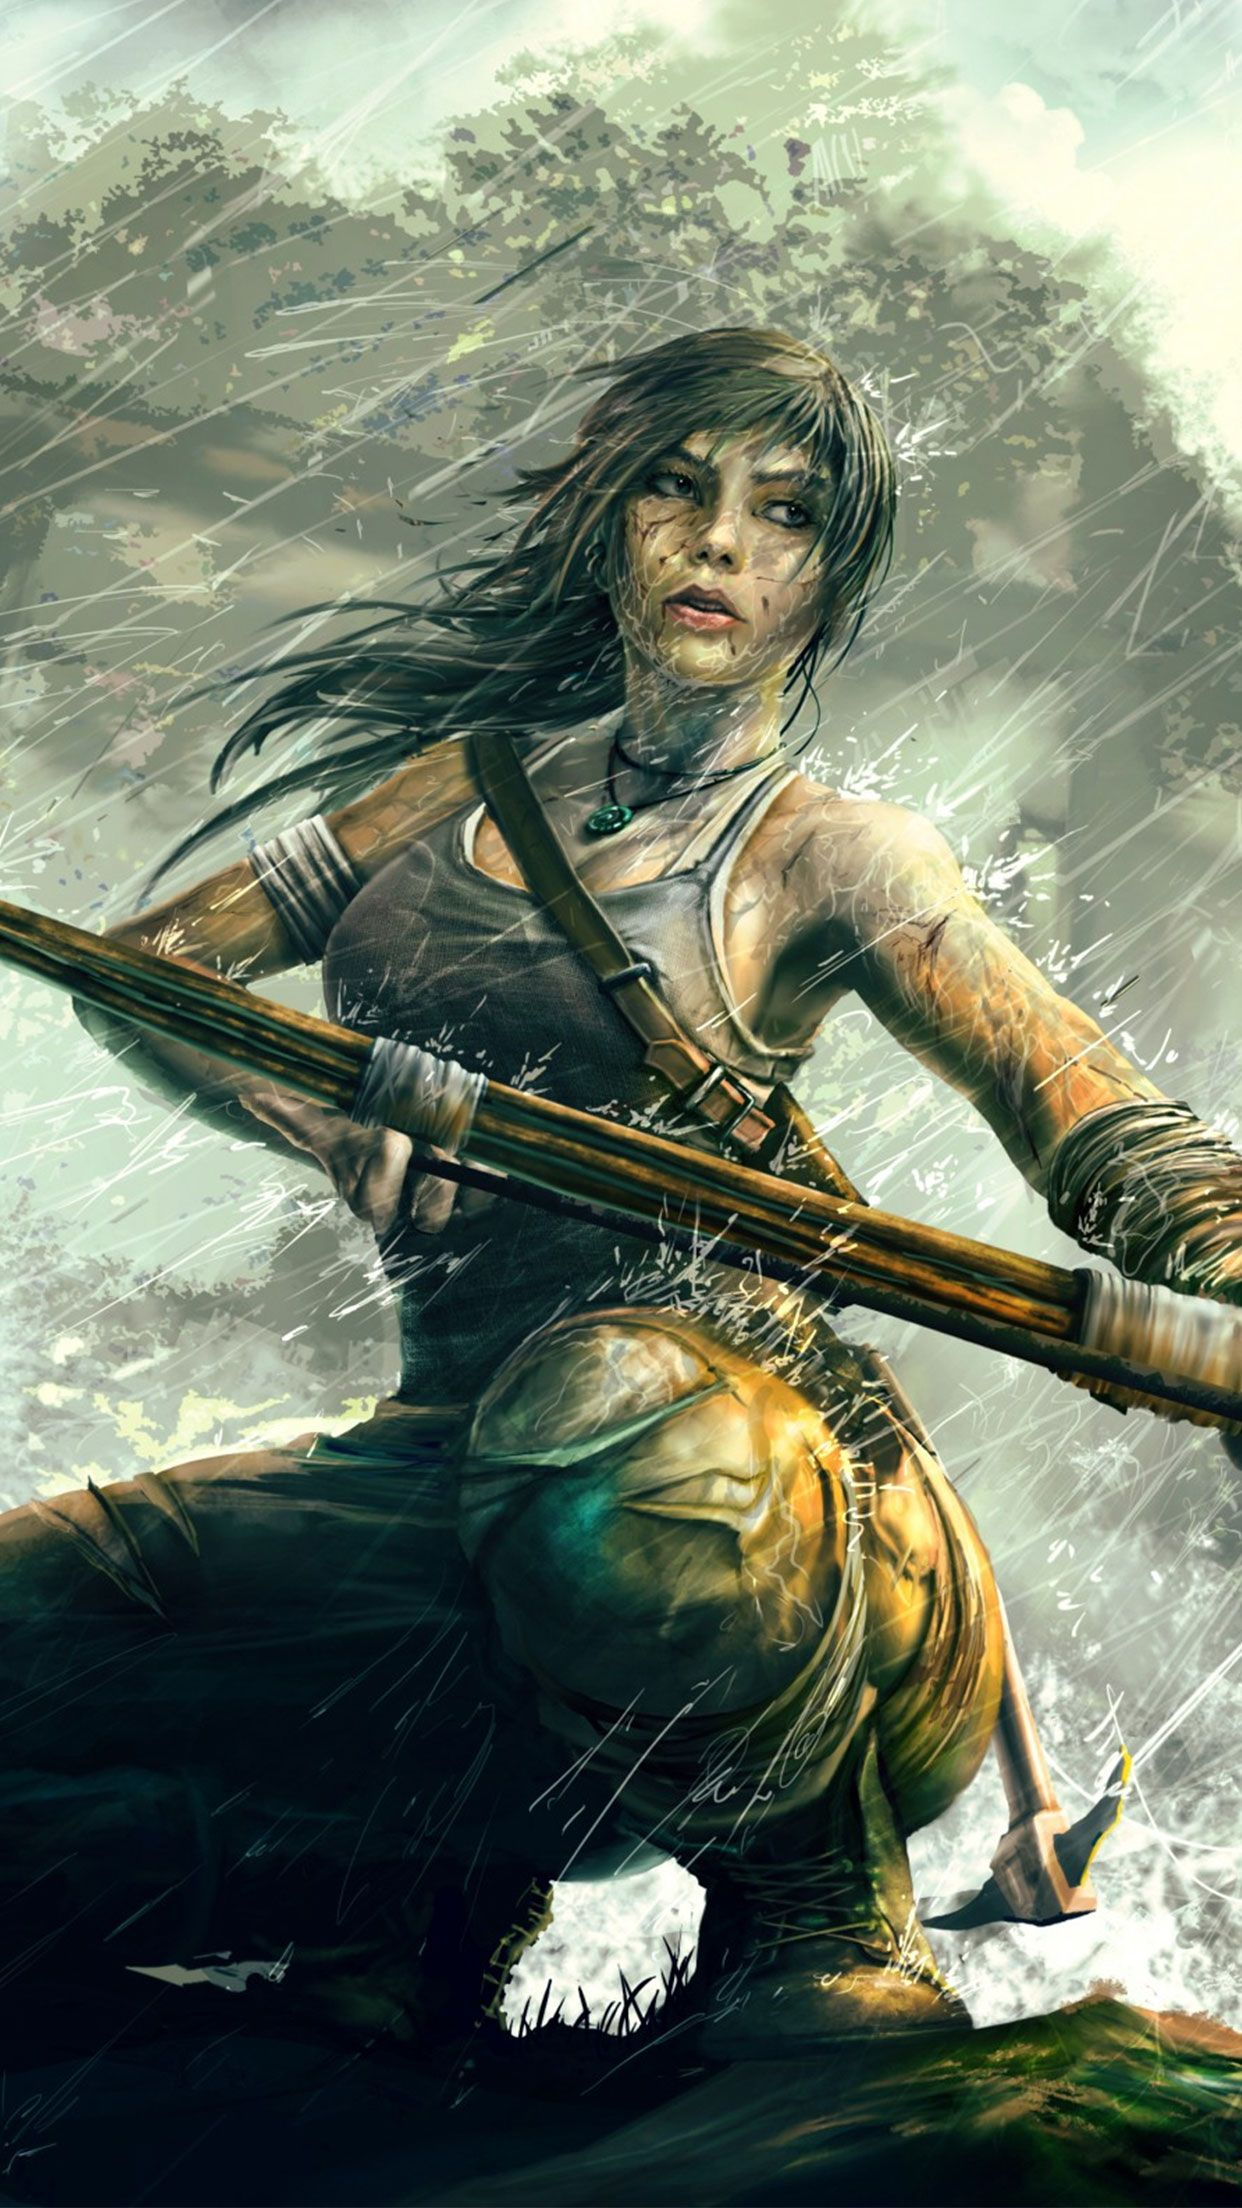 Arte Grafica Lara Tomb Raider Lara Croft Game Wallpaper For Iphone Android